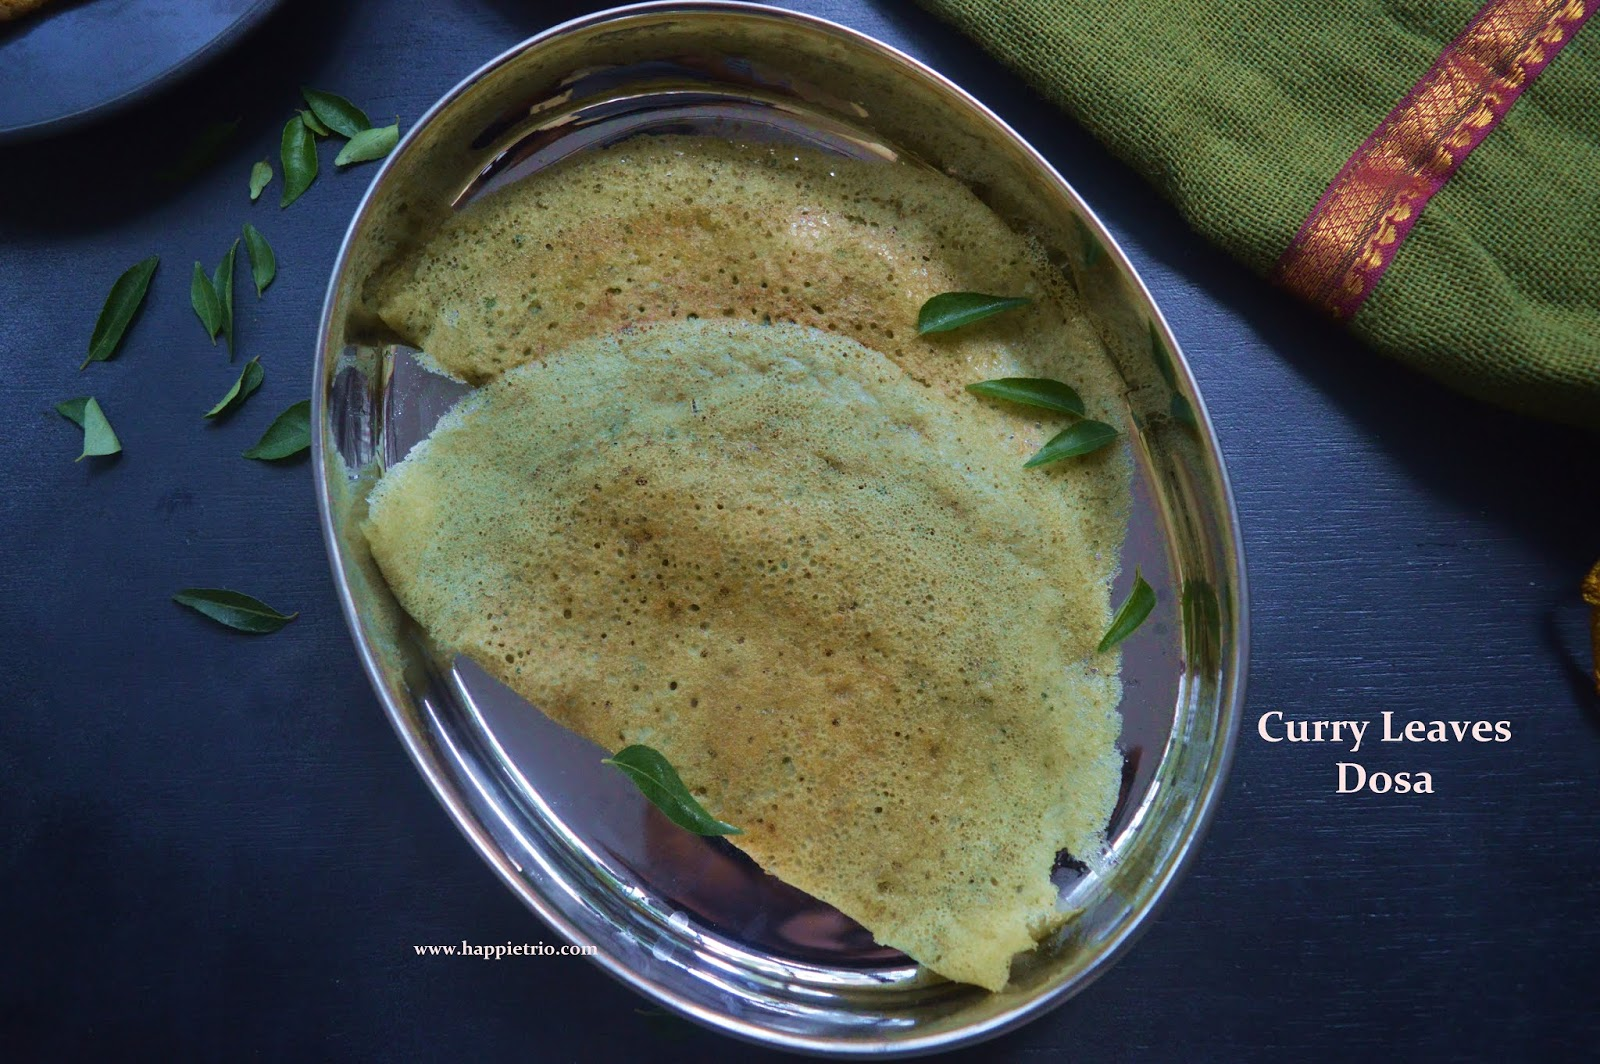 Curry Leaves Dosa Recipe   Karuvepilla Dosa   How to Prepare Dosa with Curry Leaves